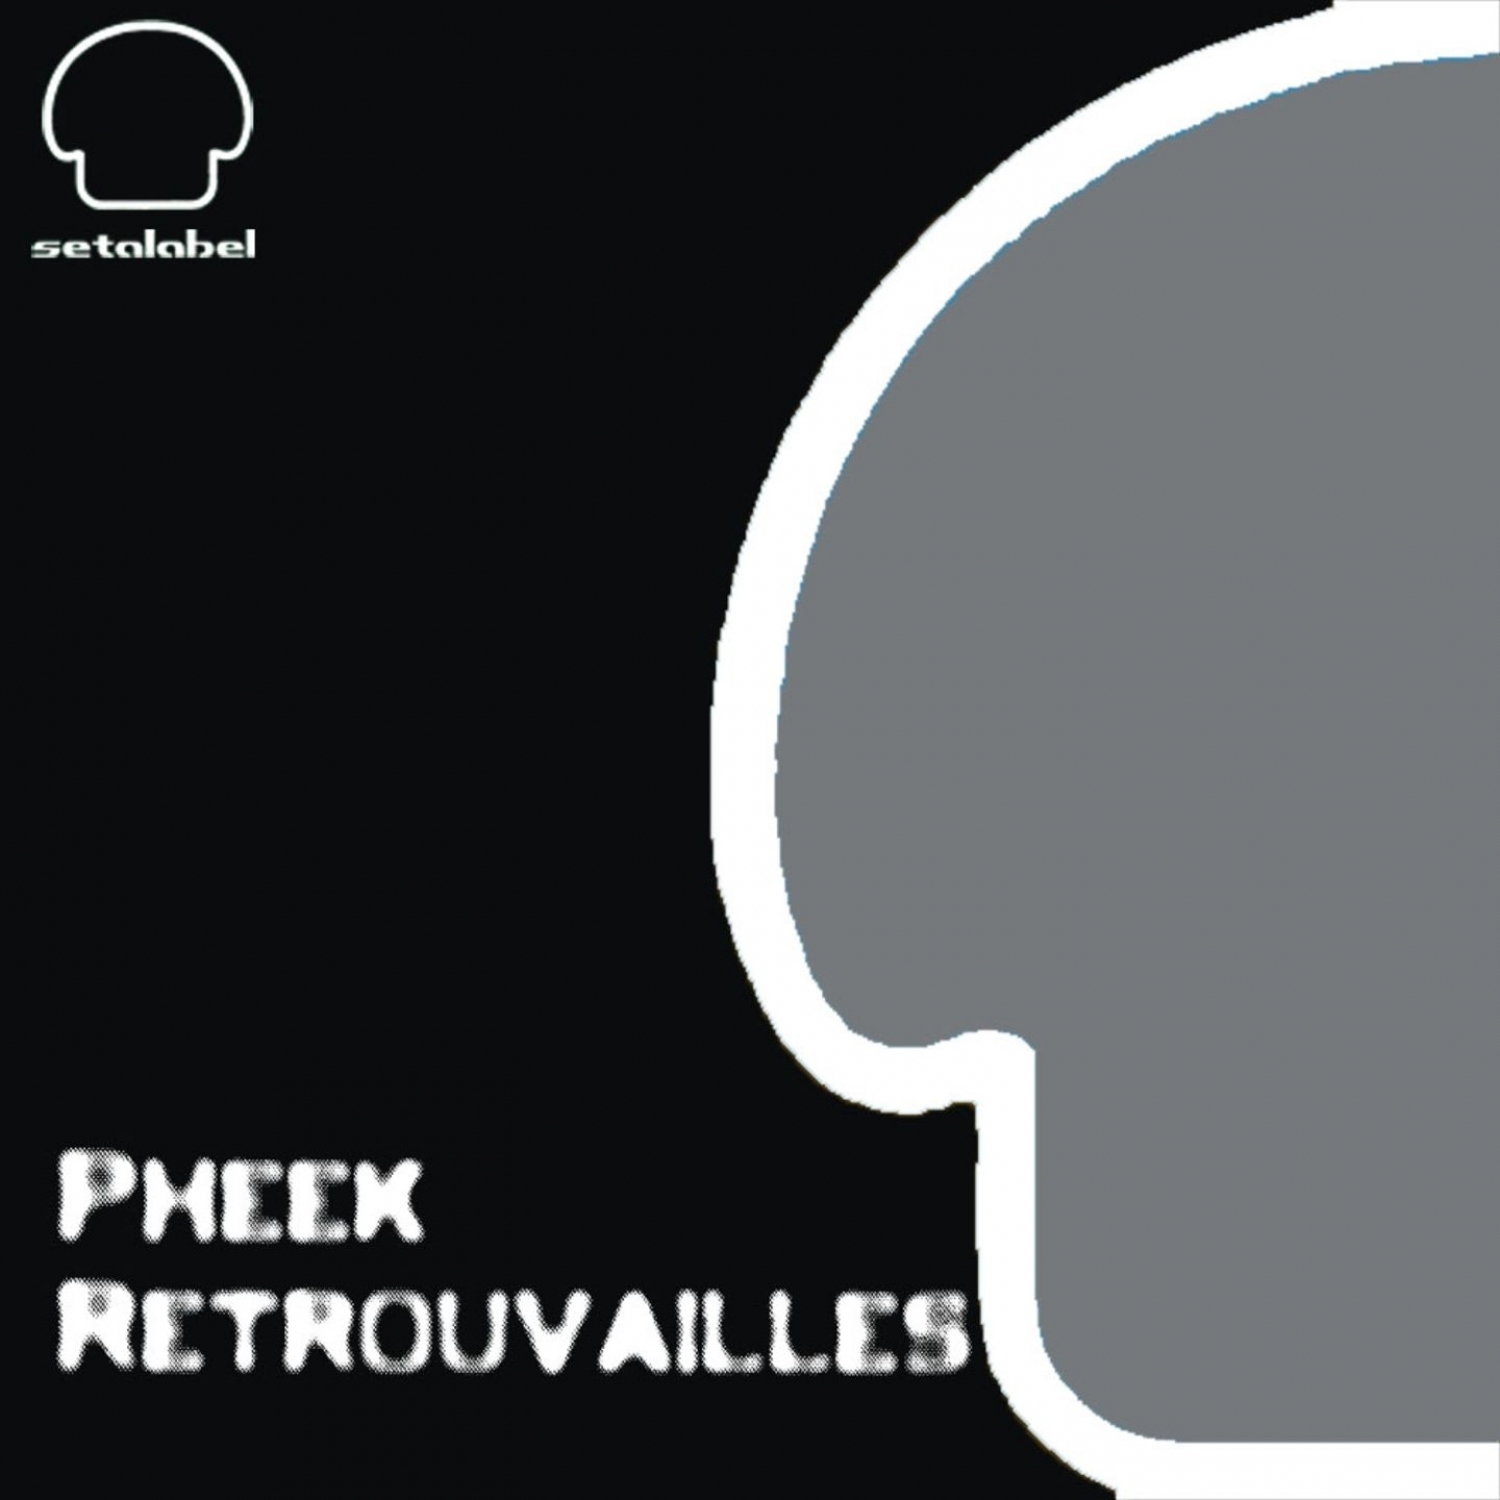 Pheek  - Retrouvailles (The Automatic Message Remix)